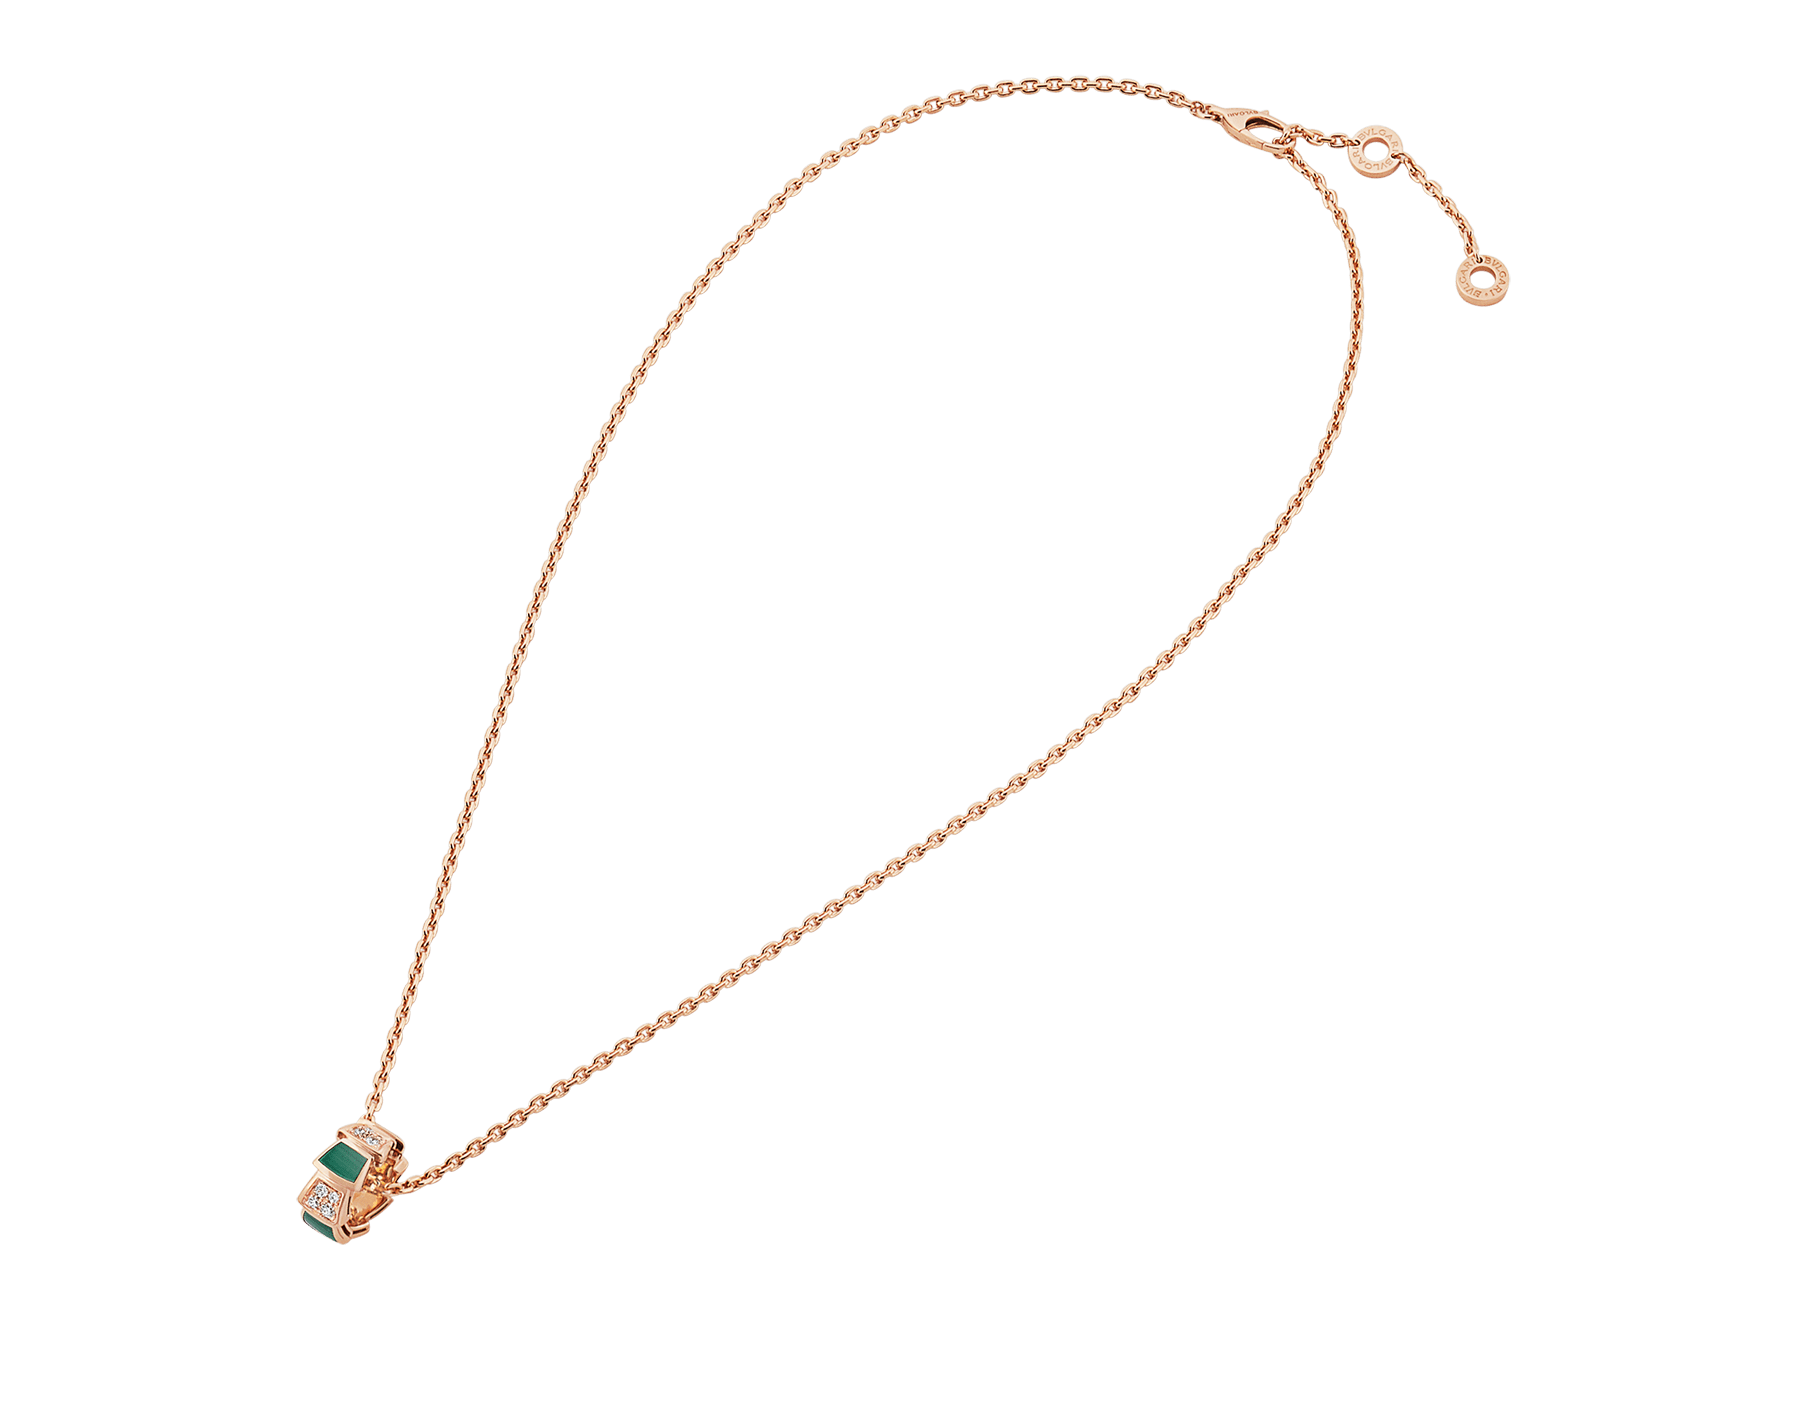 Serpenti Viper 18 kt rose gold necklace set with malachite elements and pavé diamonds on the pendant. 355958 image 2